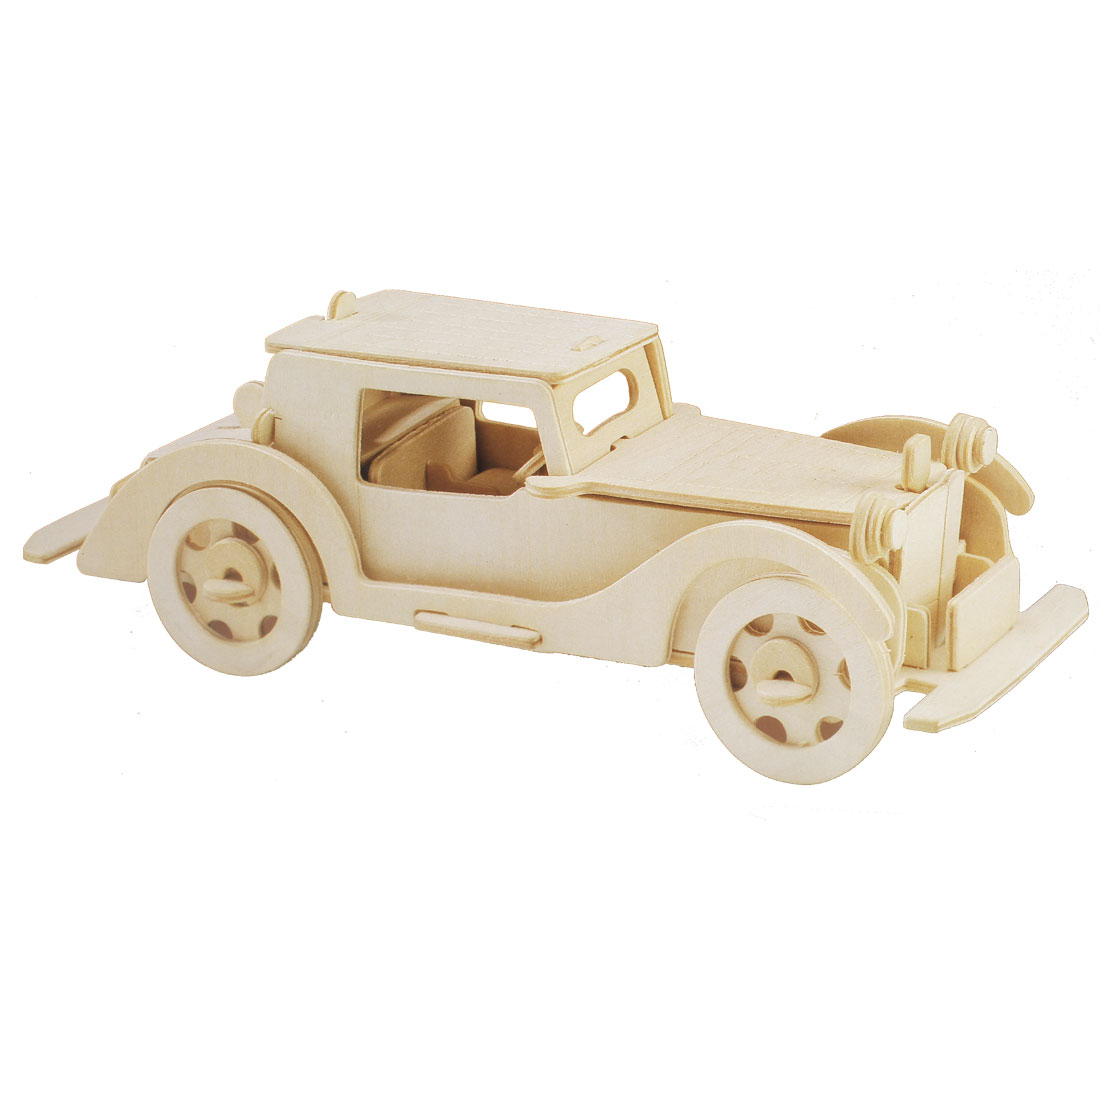 Plaything Wooden DIY Assembly Rolling Automobile Model Puzzle Toy